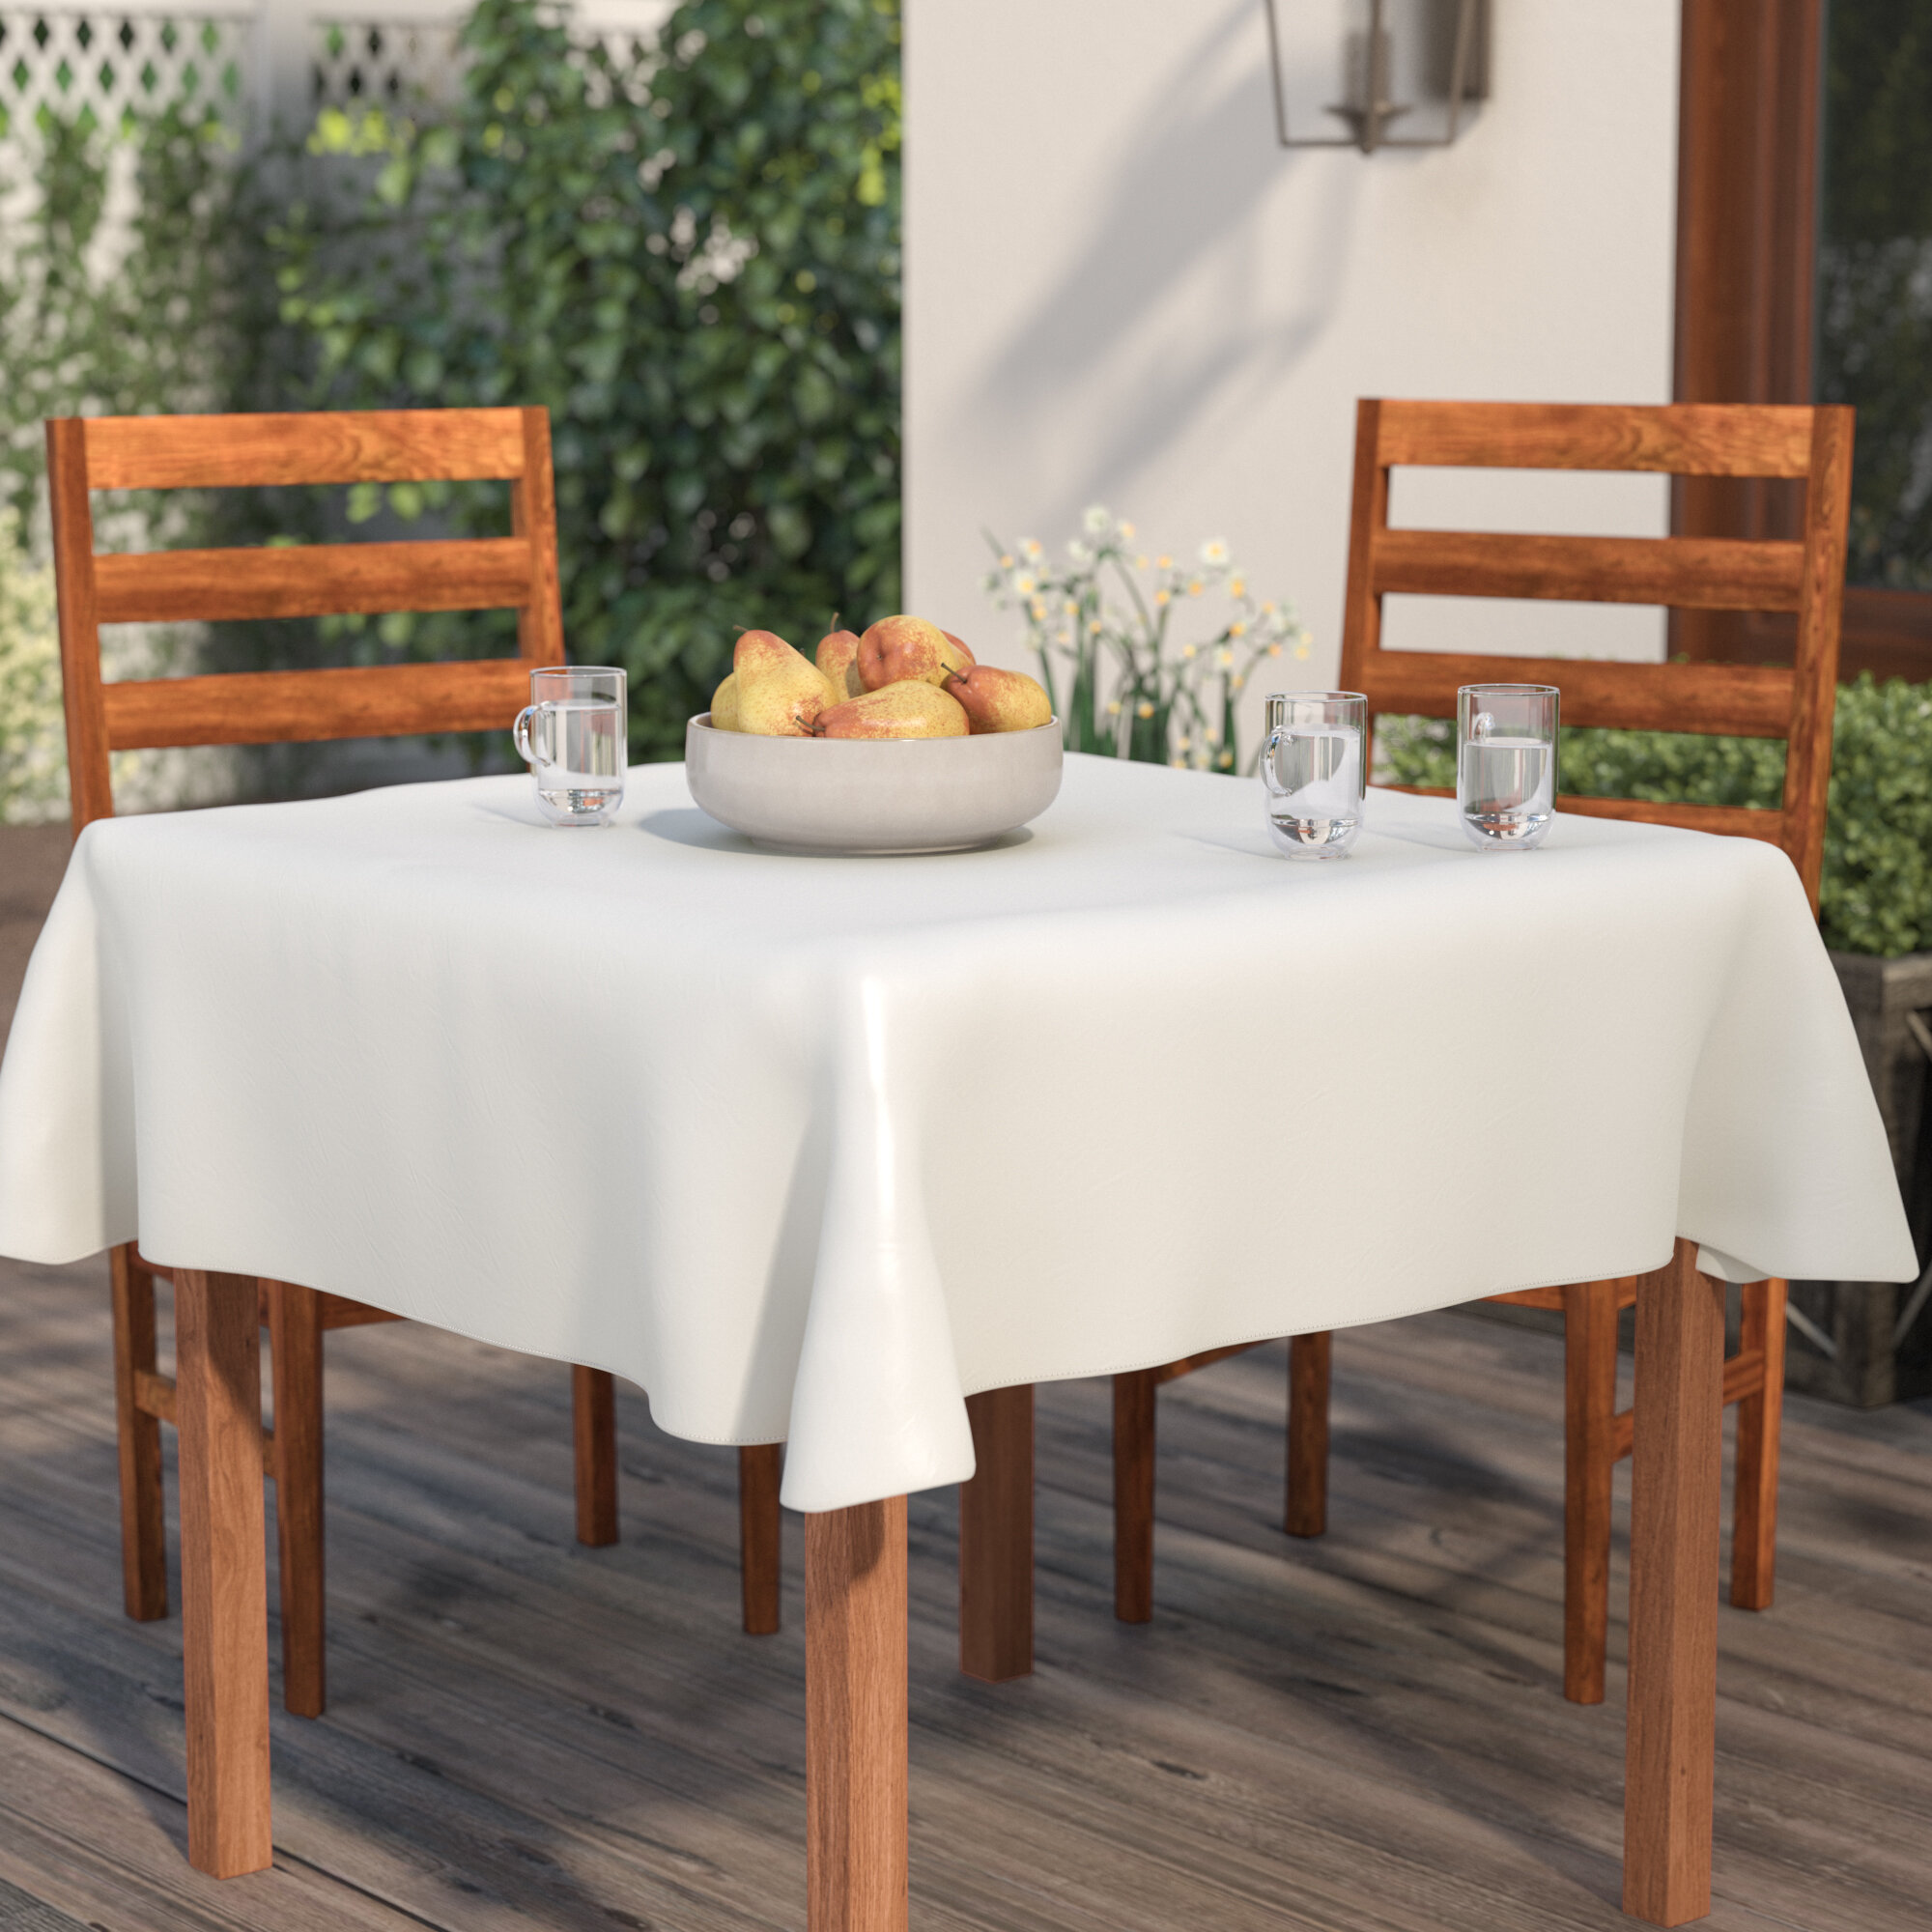 Charmant Vinyl Flannel Backed Tablecloth